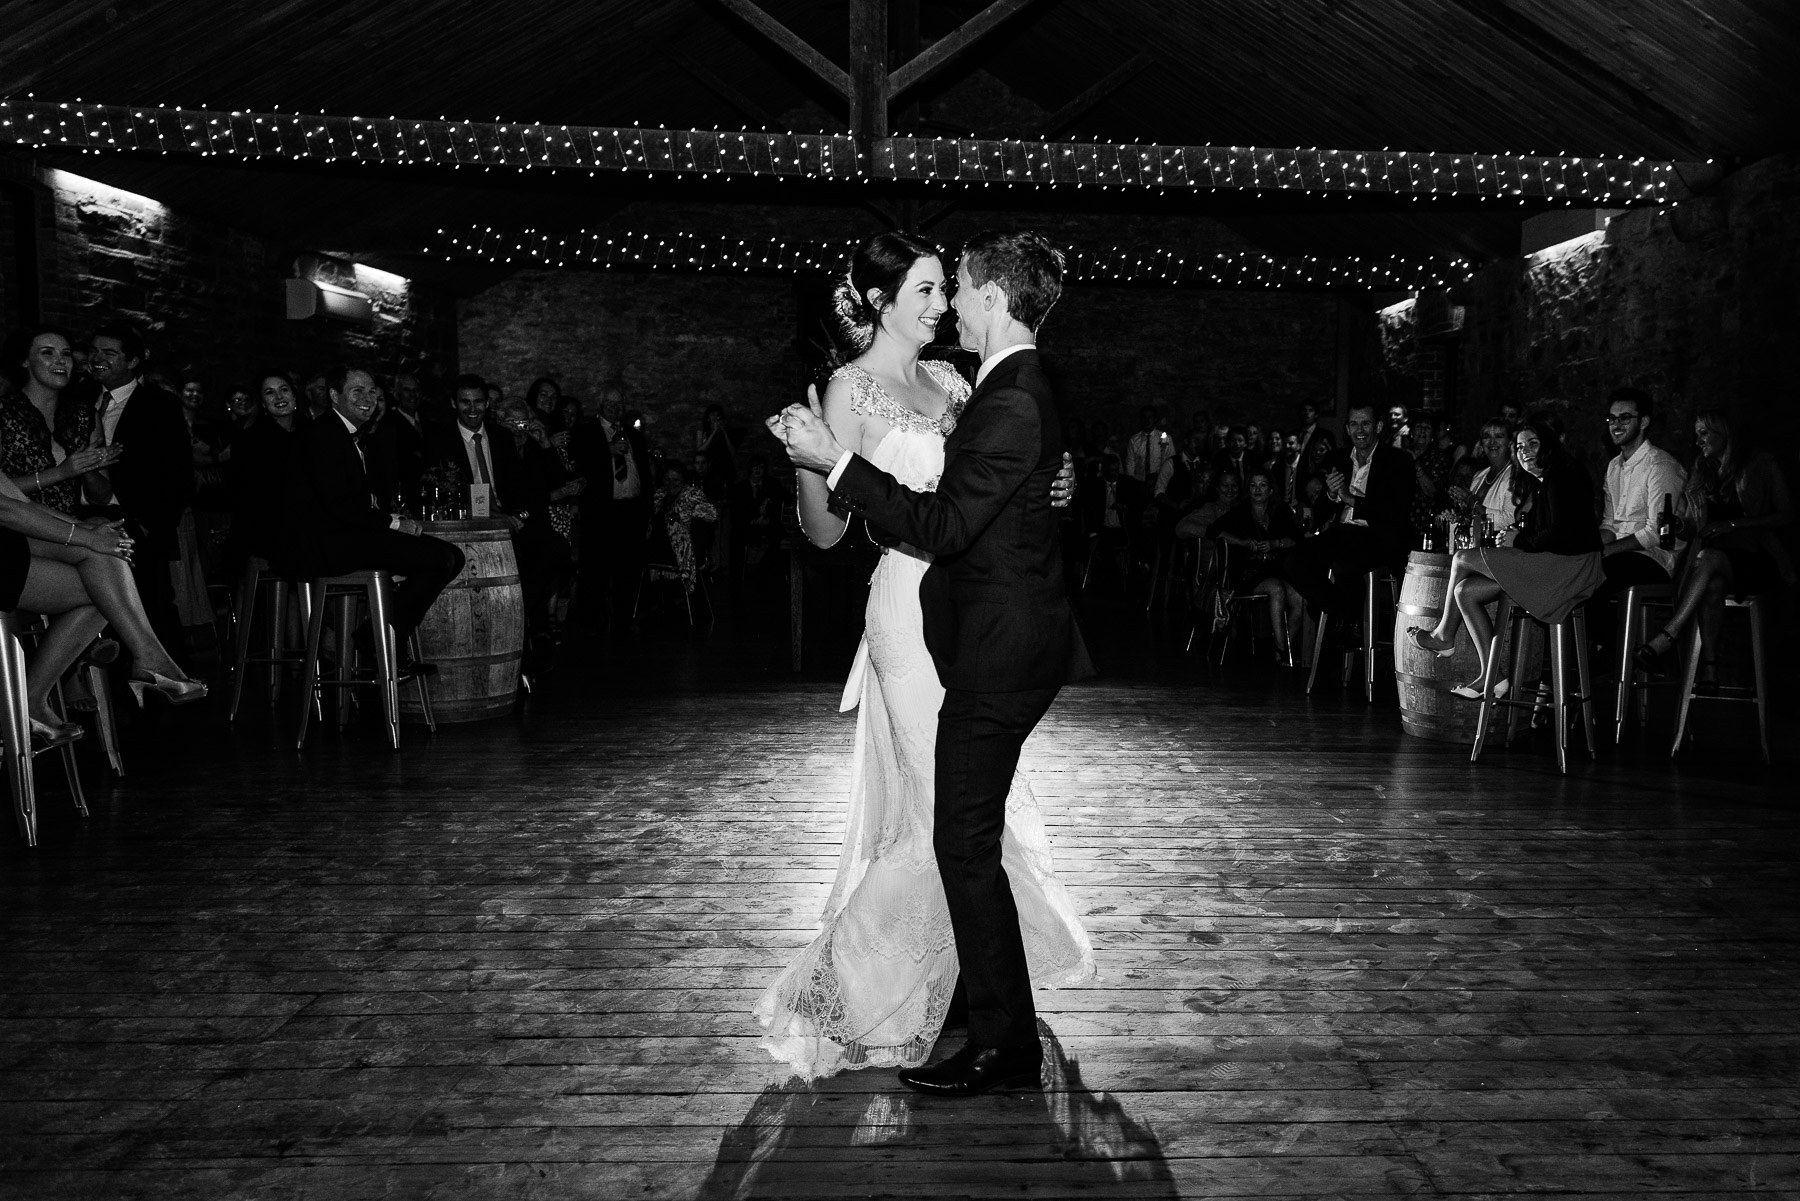 Justin_and_Jim_Best_Of_Wedding_Photography-65.jpg